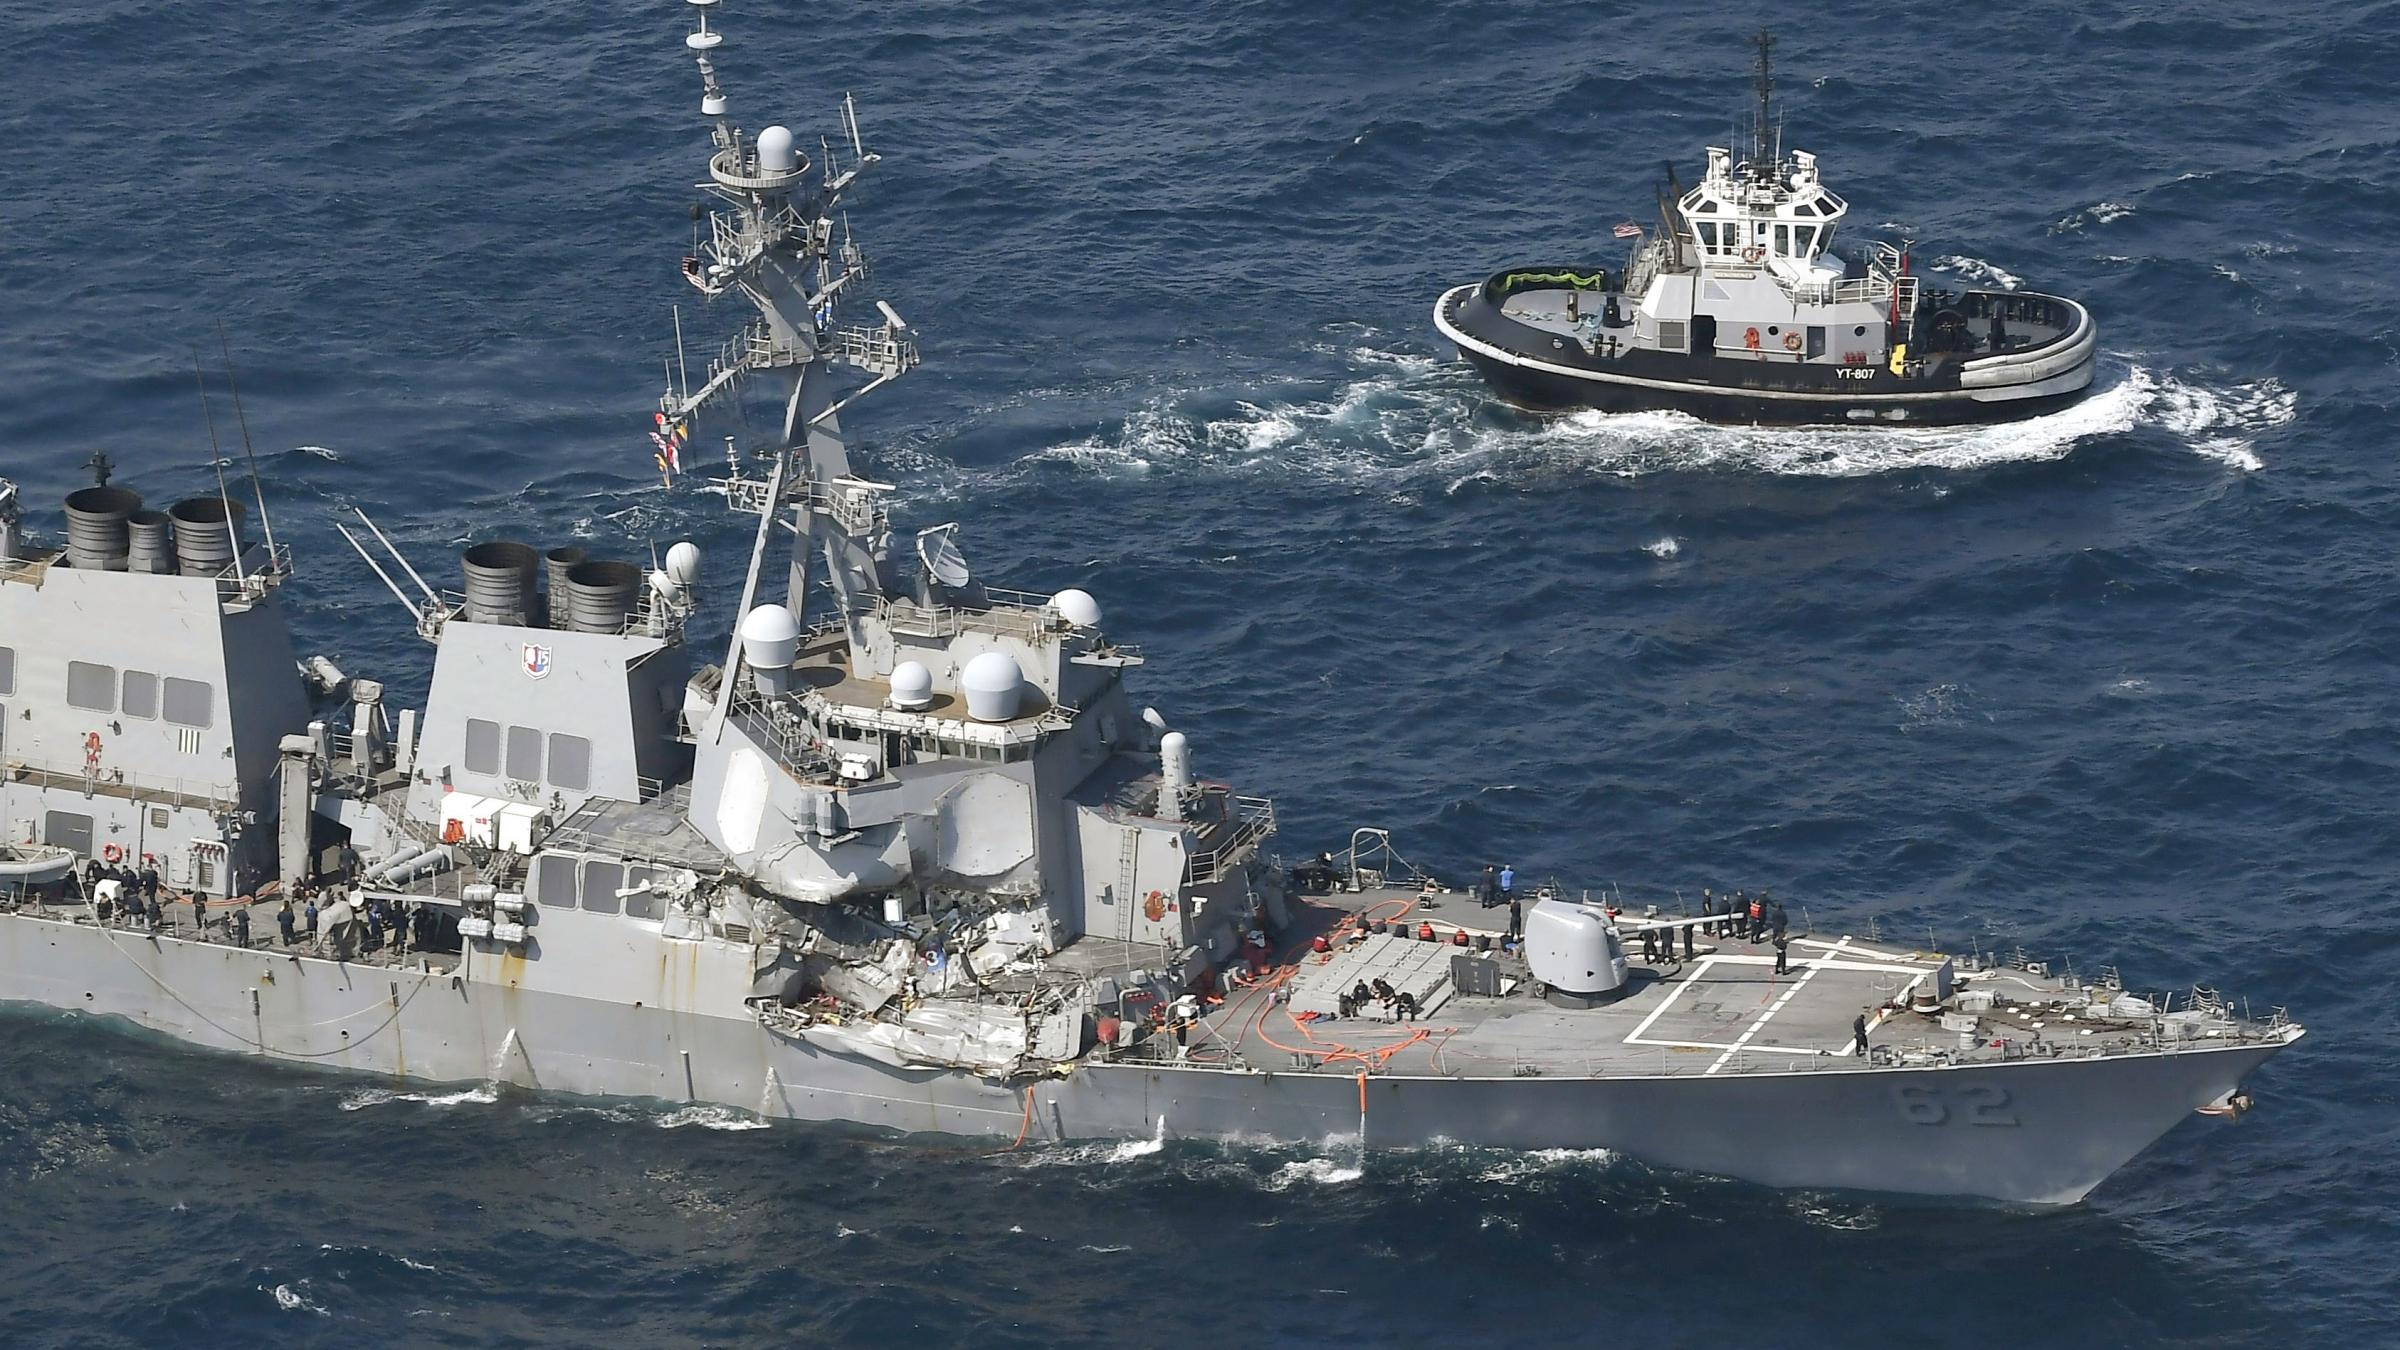 United States  destroyer collides with PH-flagged vessel